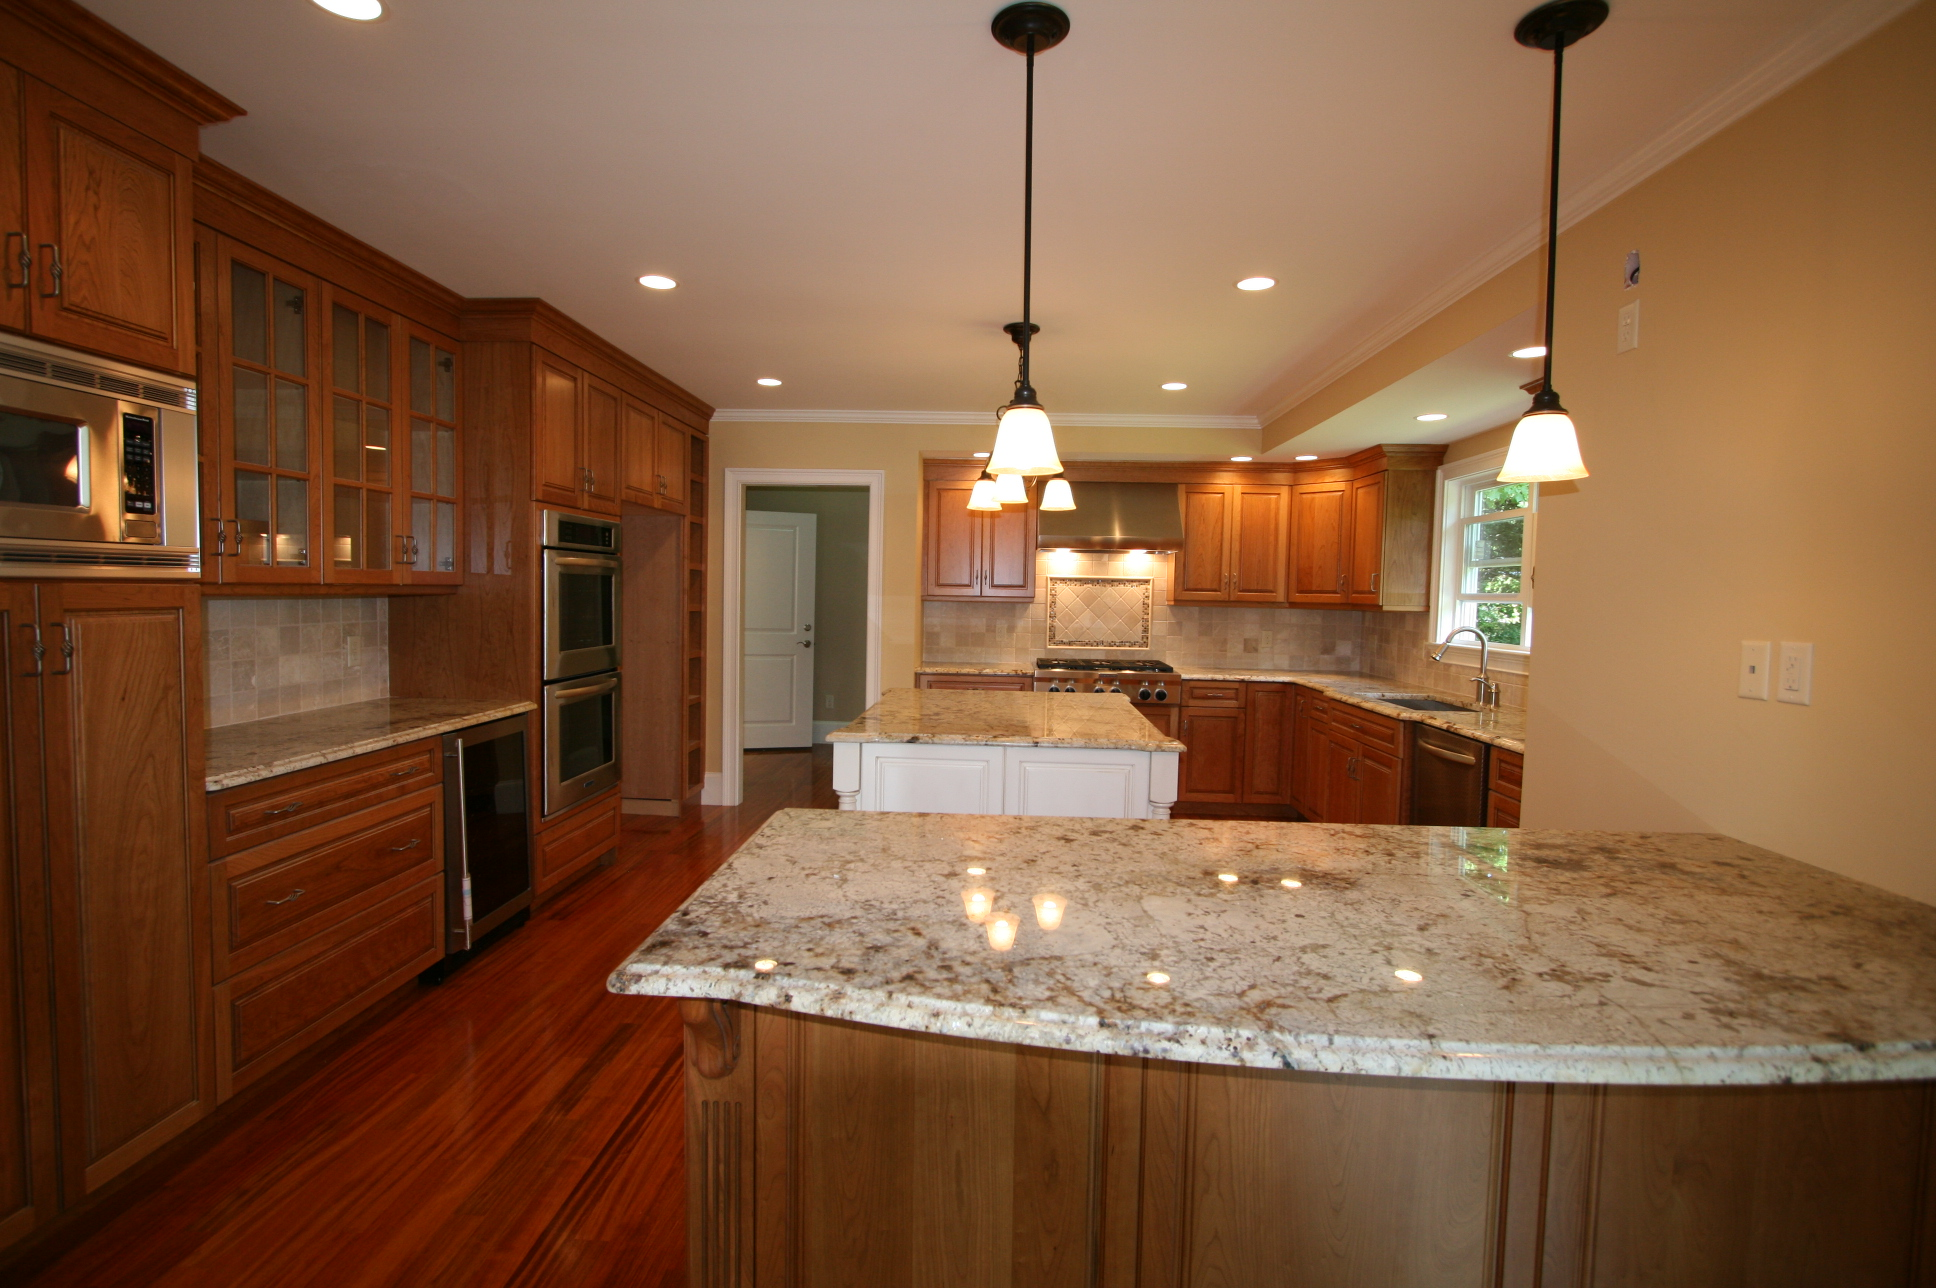 Check out the Pics of New Kitchens! | Halliday Construction